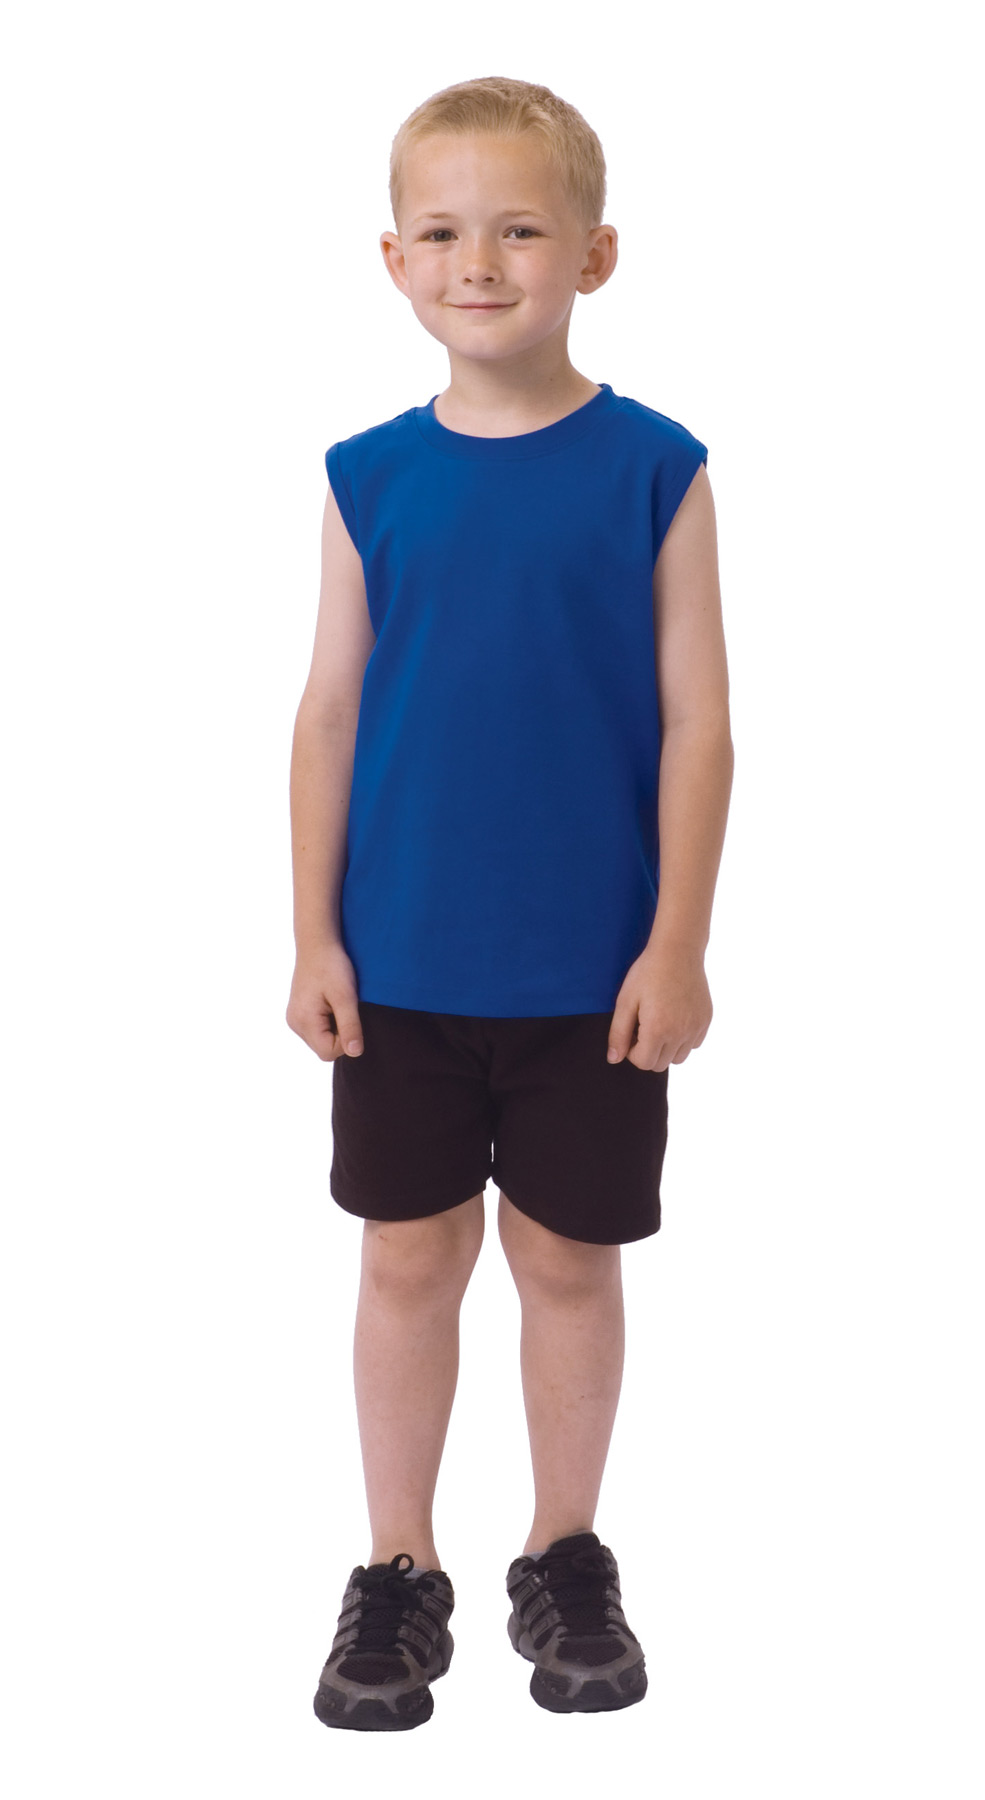 Monag 400024 - Interlock Sleeveless Tee